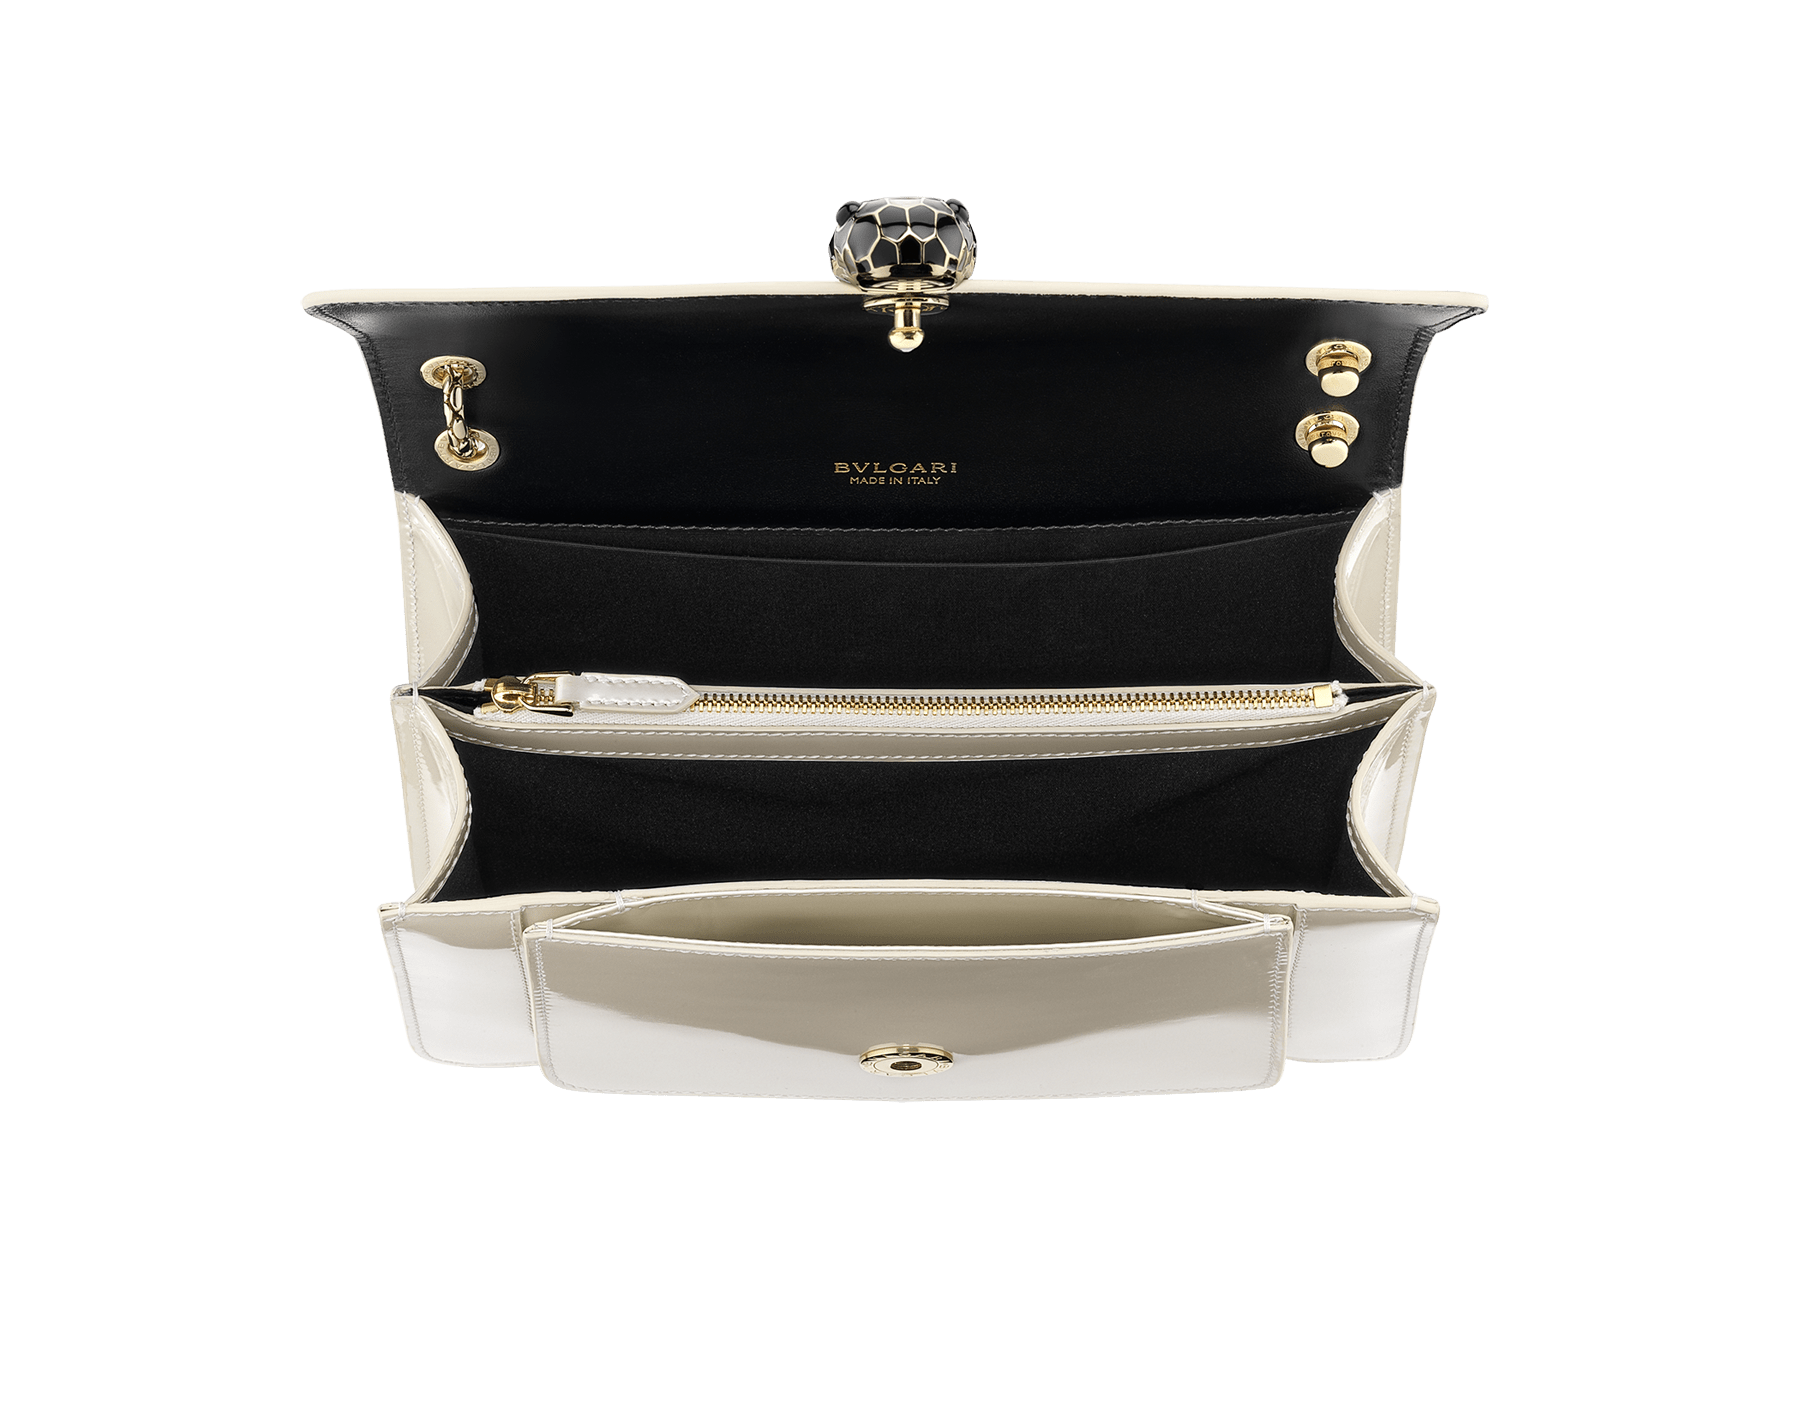 """Serpenti Forever"" crossbody bag in white agate calf leather with a varnished and pearled effect. Iconic snakehead closure in light gold plated brass enriched with black and pearled white agate enamel and black onyx eyes. 290273 image 4"